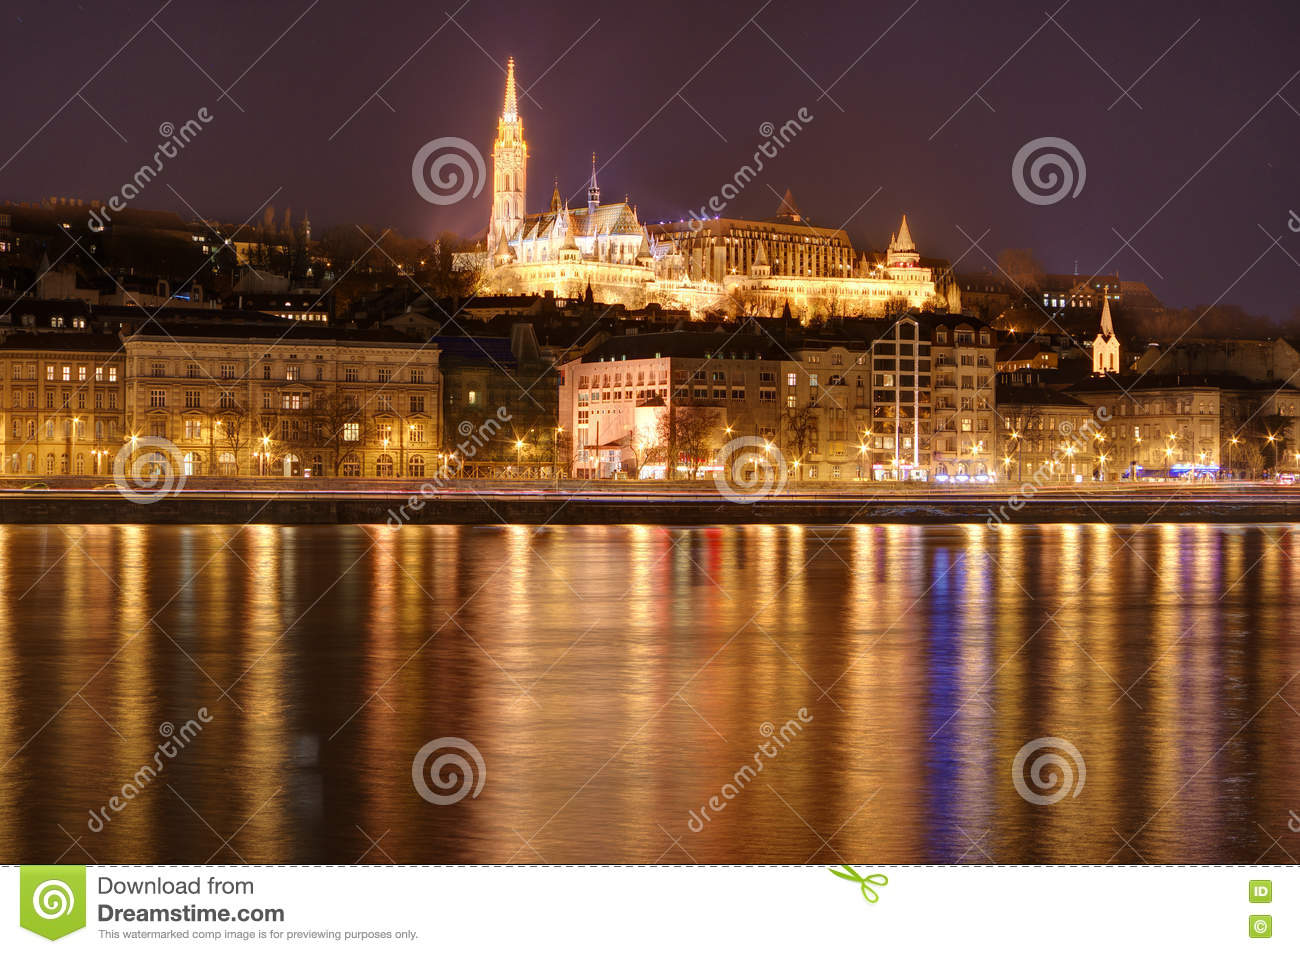 Hungary, Budapest by night - reflections in Danube river, Fisherman s Bastion